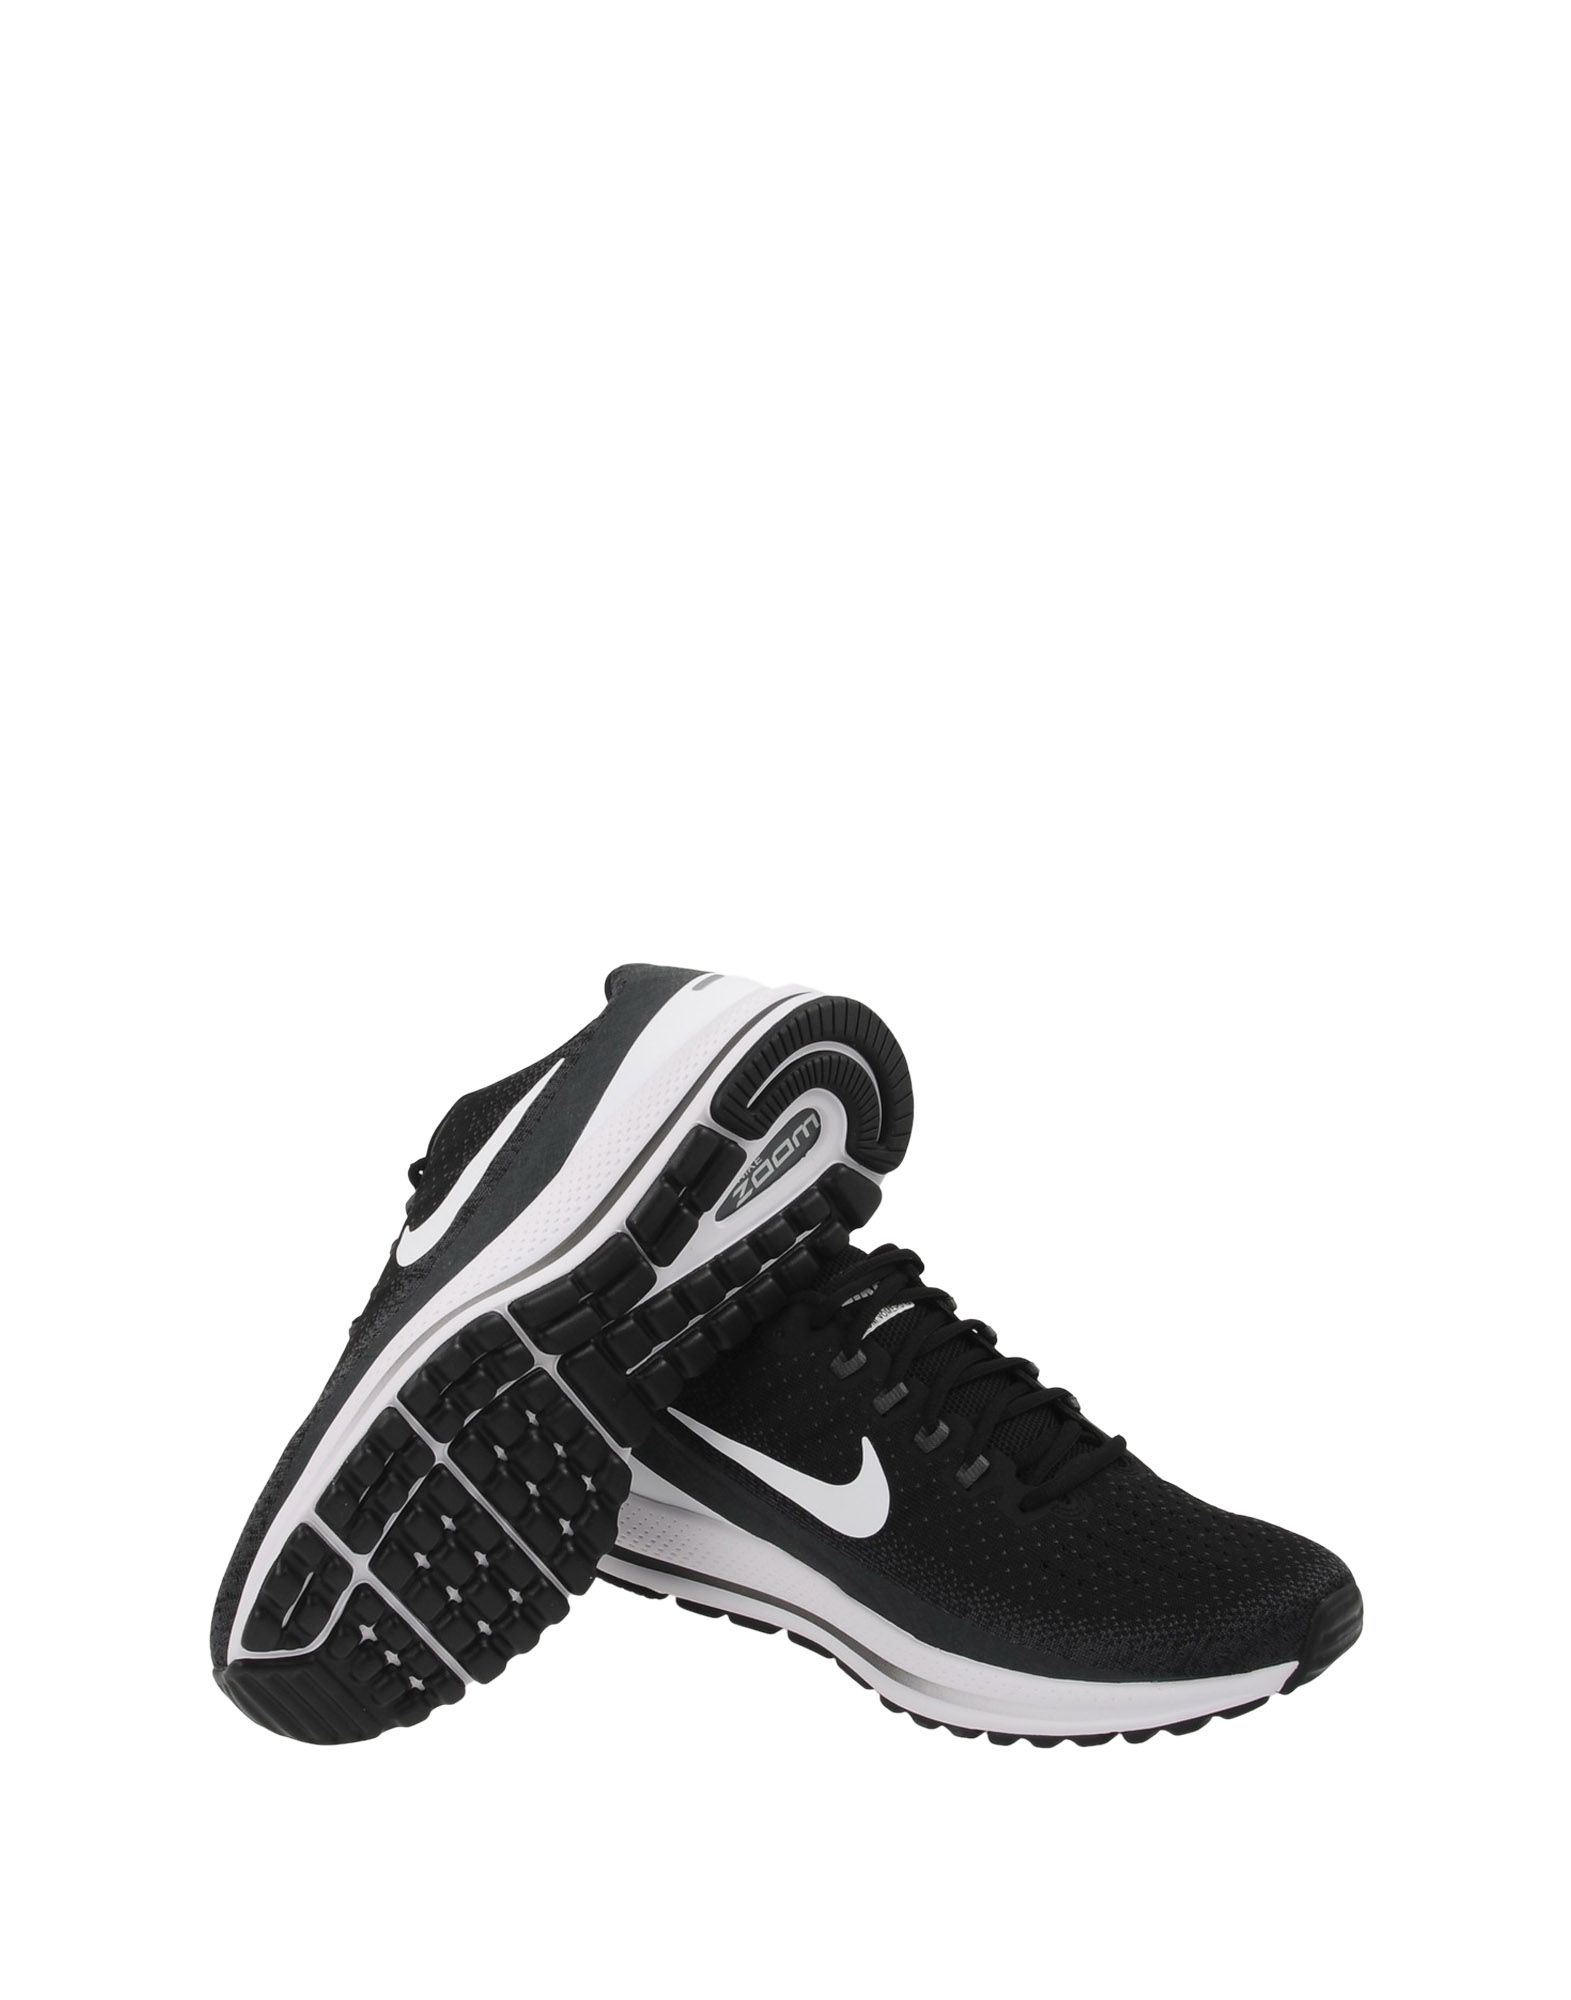 Sneakers Nike  Air Zoom Vomero 13 - Homme - Sneakers Nike sur